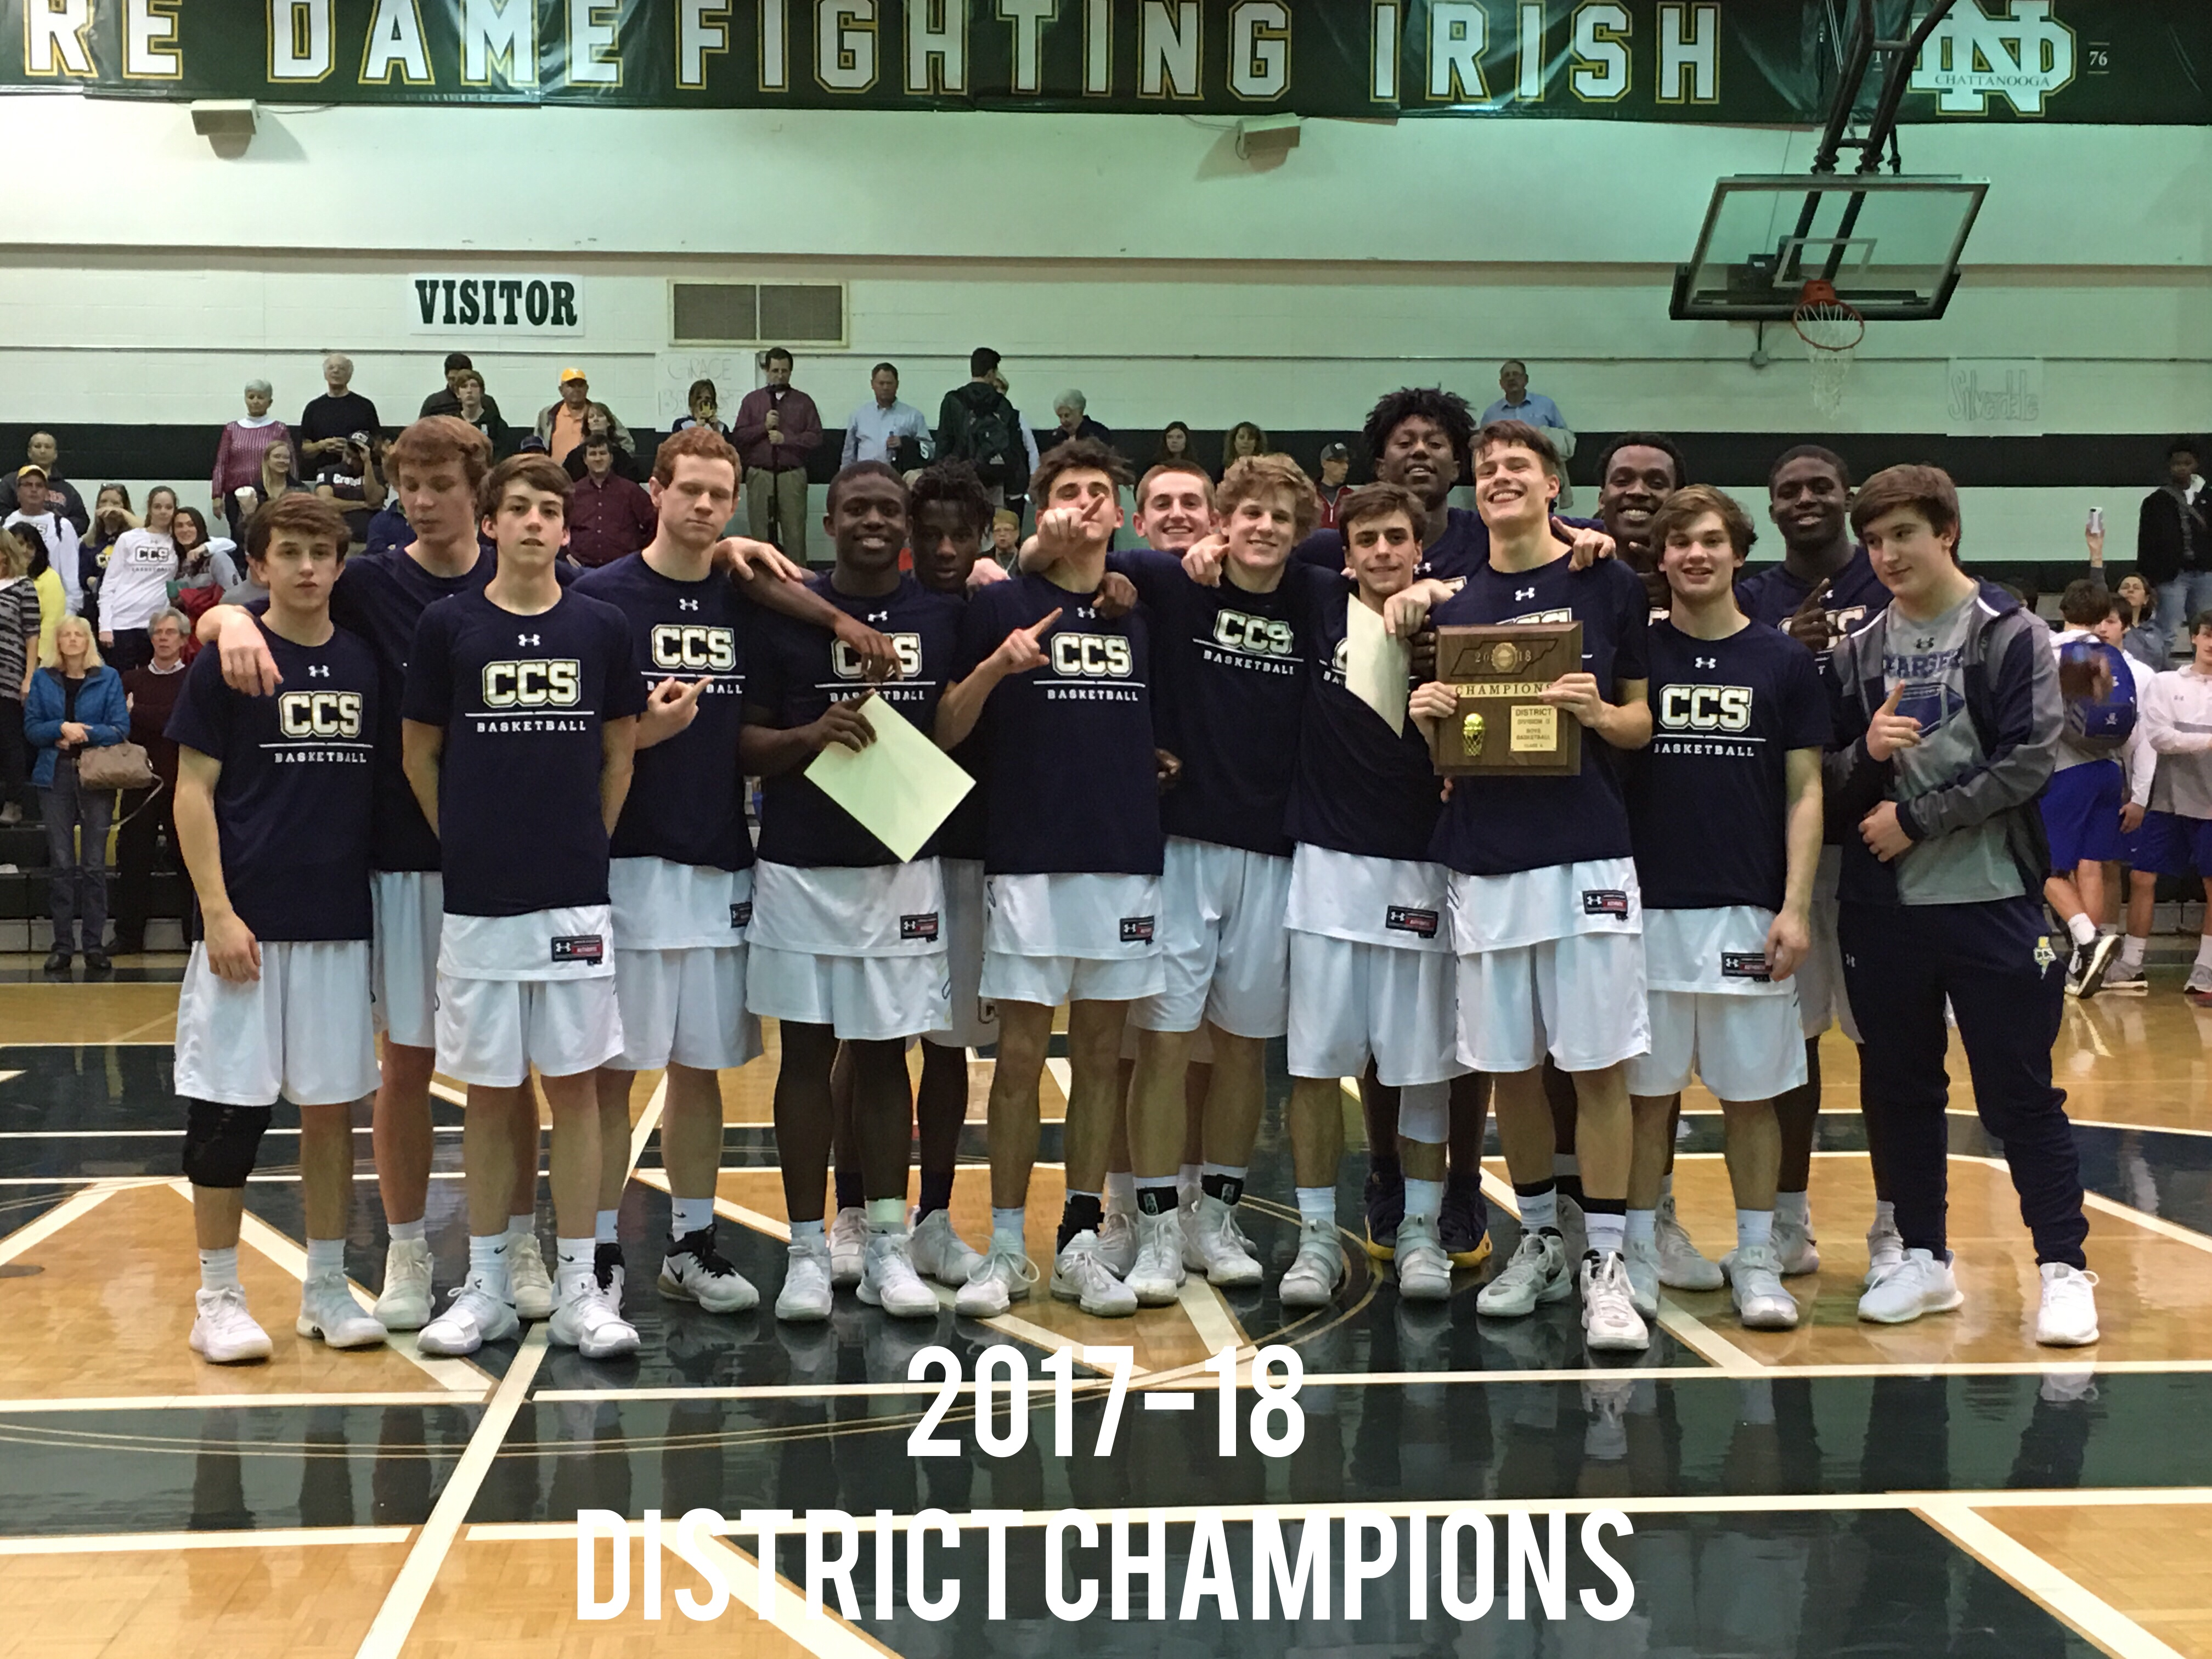 CCS Boys Basketball District Champions